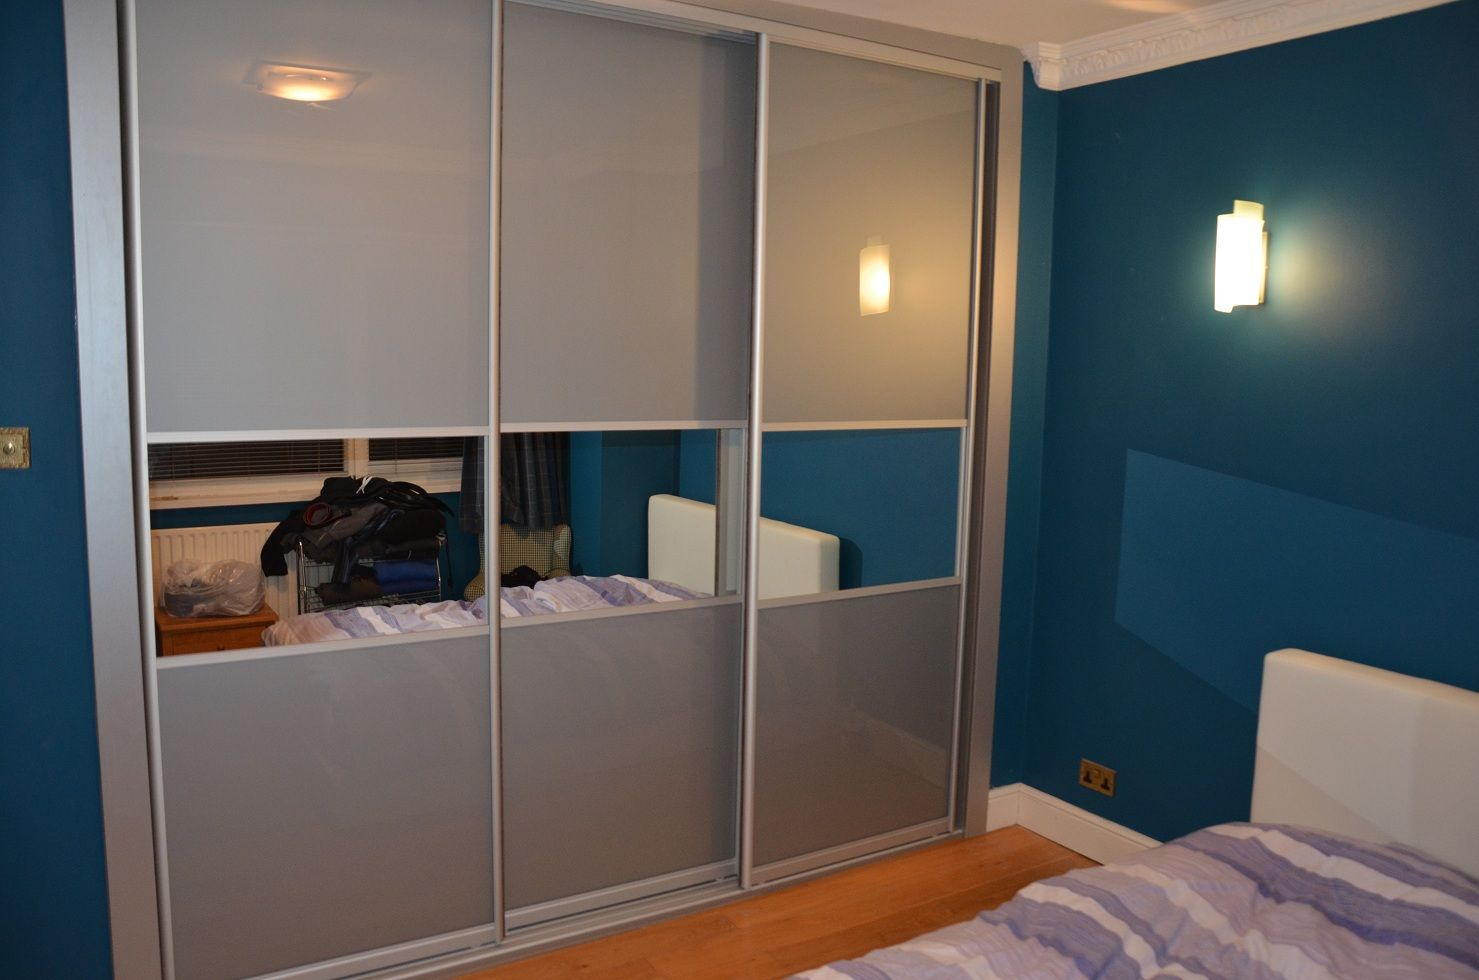 New doors for fitted wardrobes - Bedroom Alcove Sliding Wardrobe With Sliding Doors Made From Glass And Mirrors Urbanwardrobes